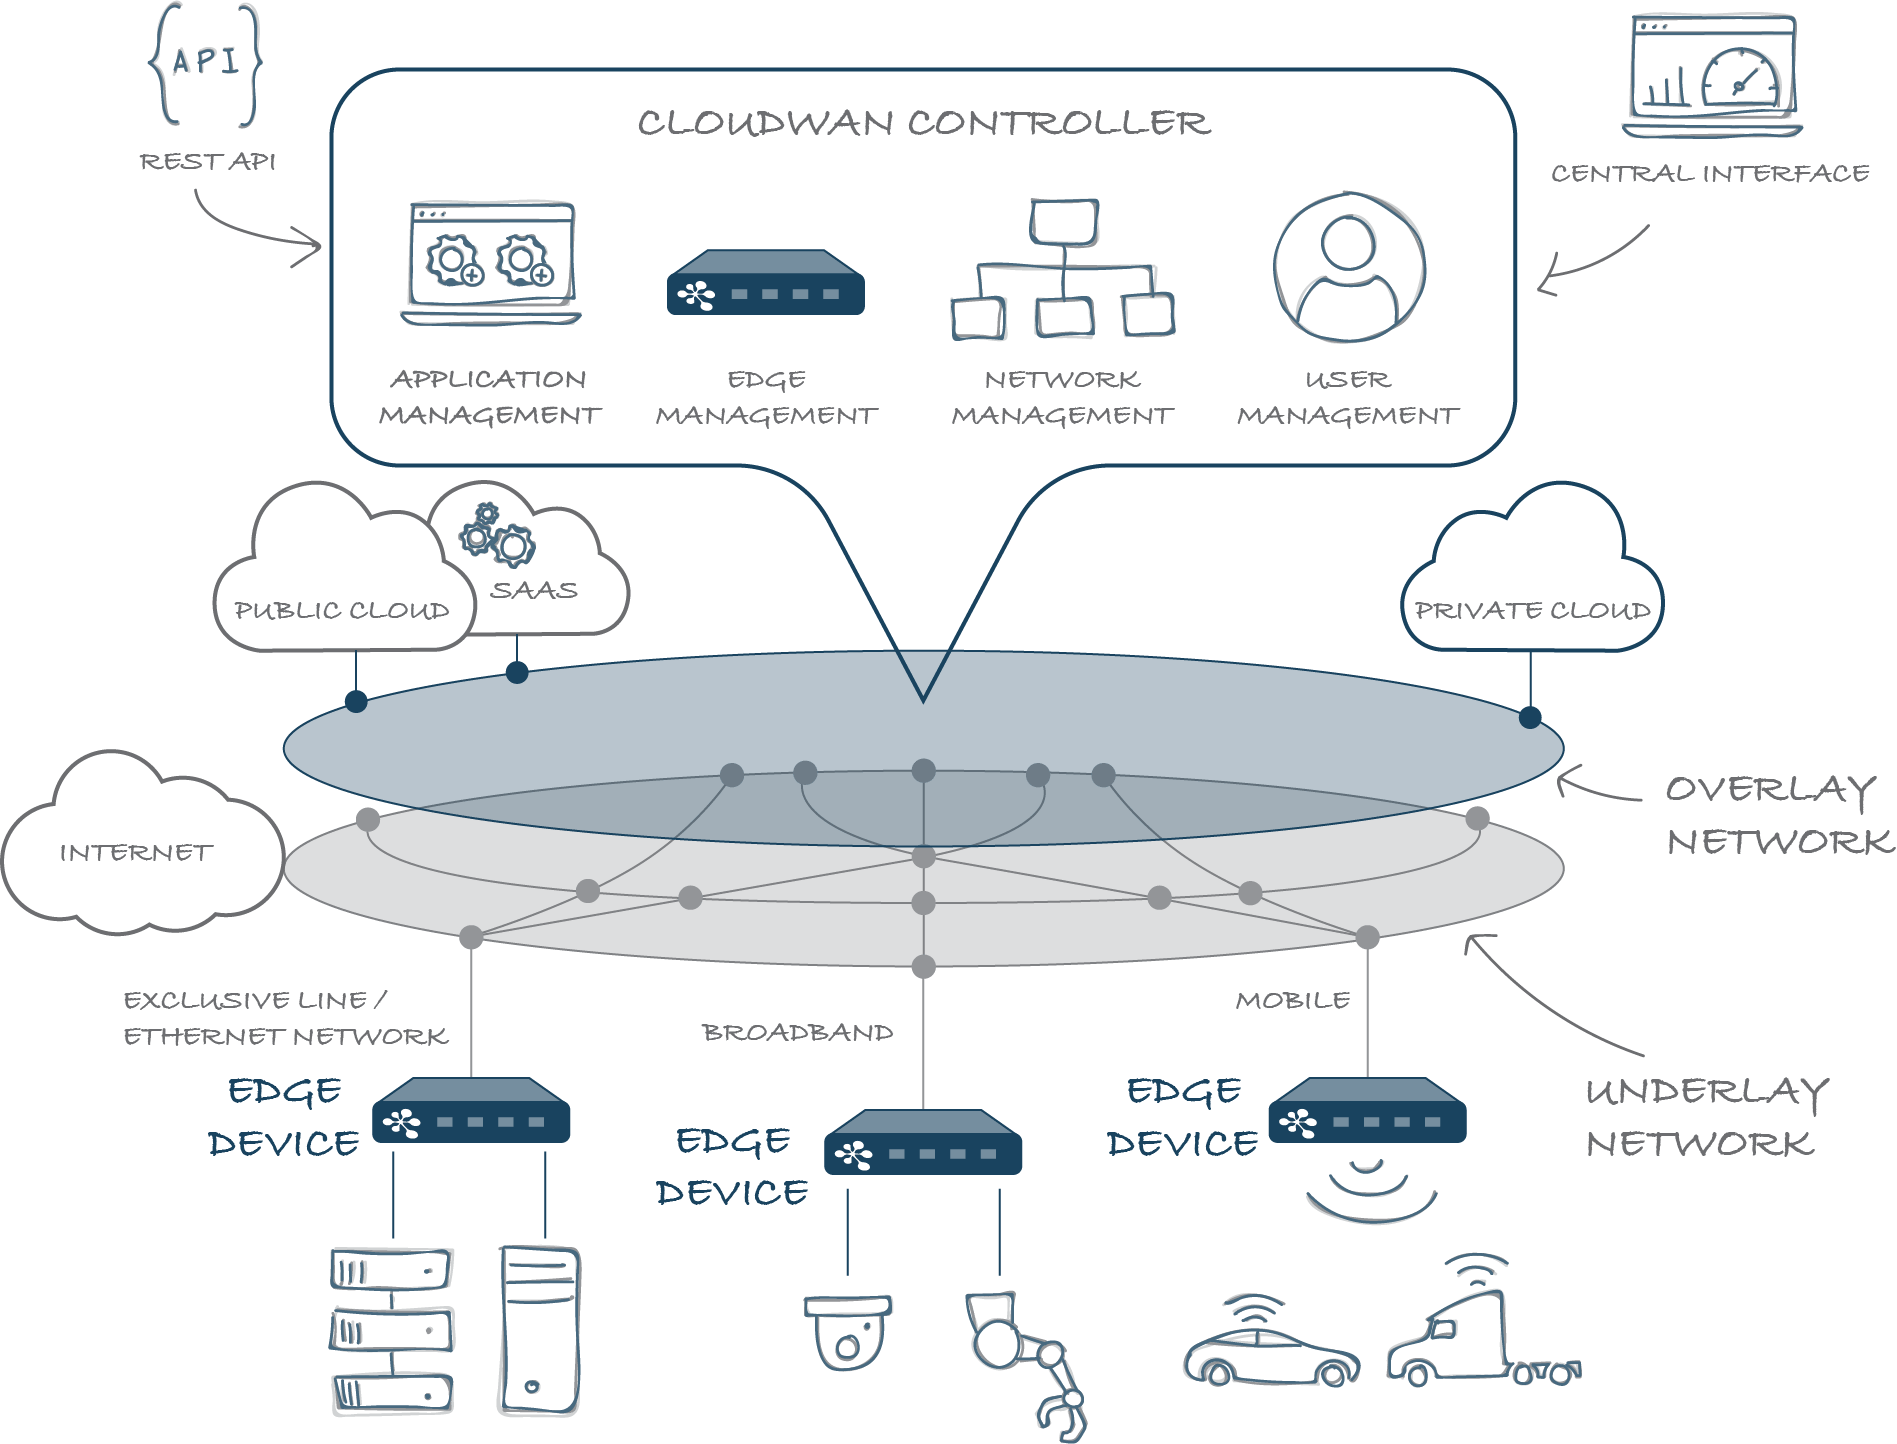 CLOUDWAN System Overview